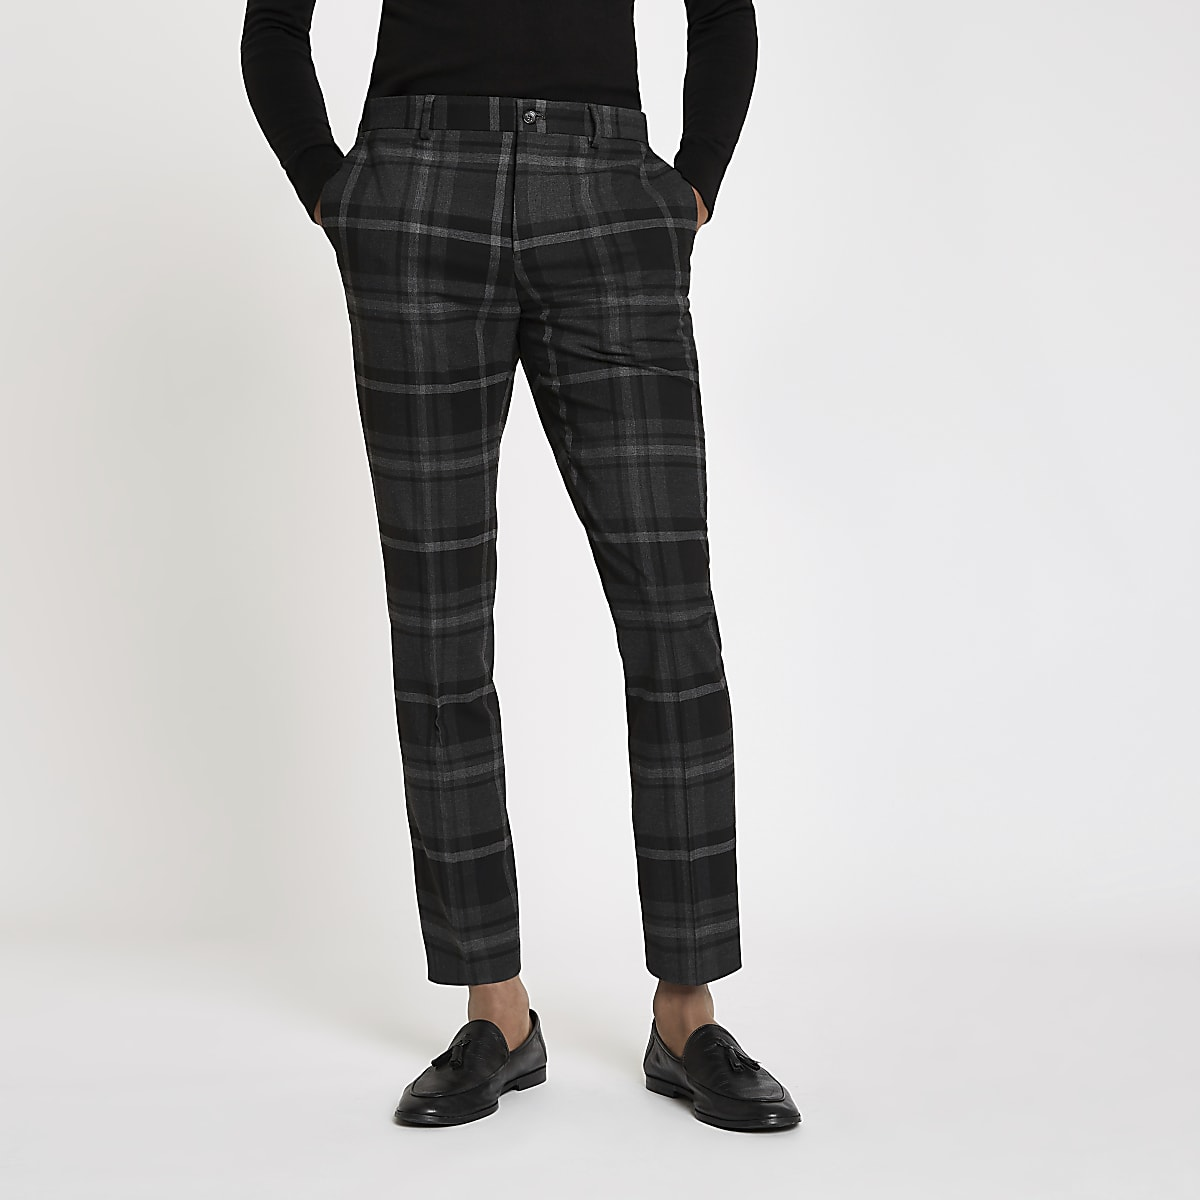 22c0ec72 Grey check skinny fit smart trousers - Smart Trousers - Trousers - men